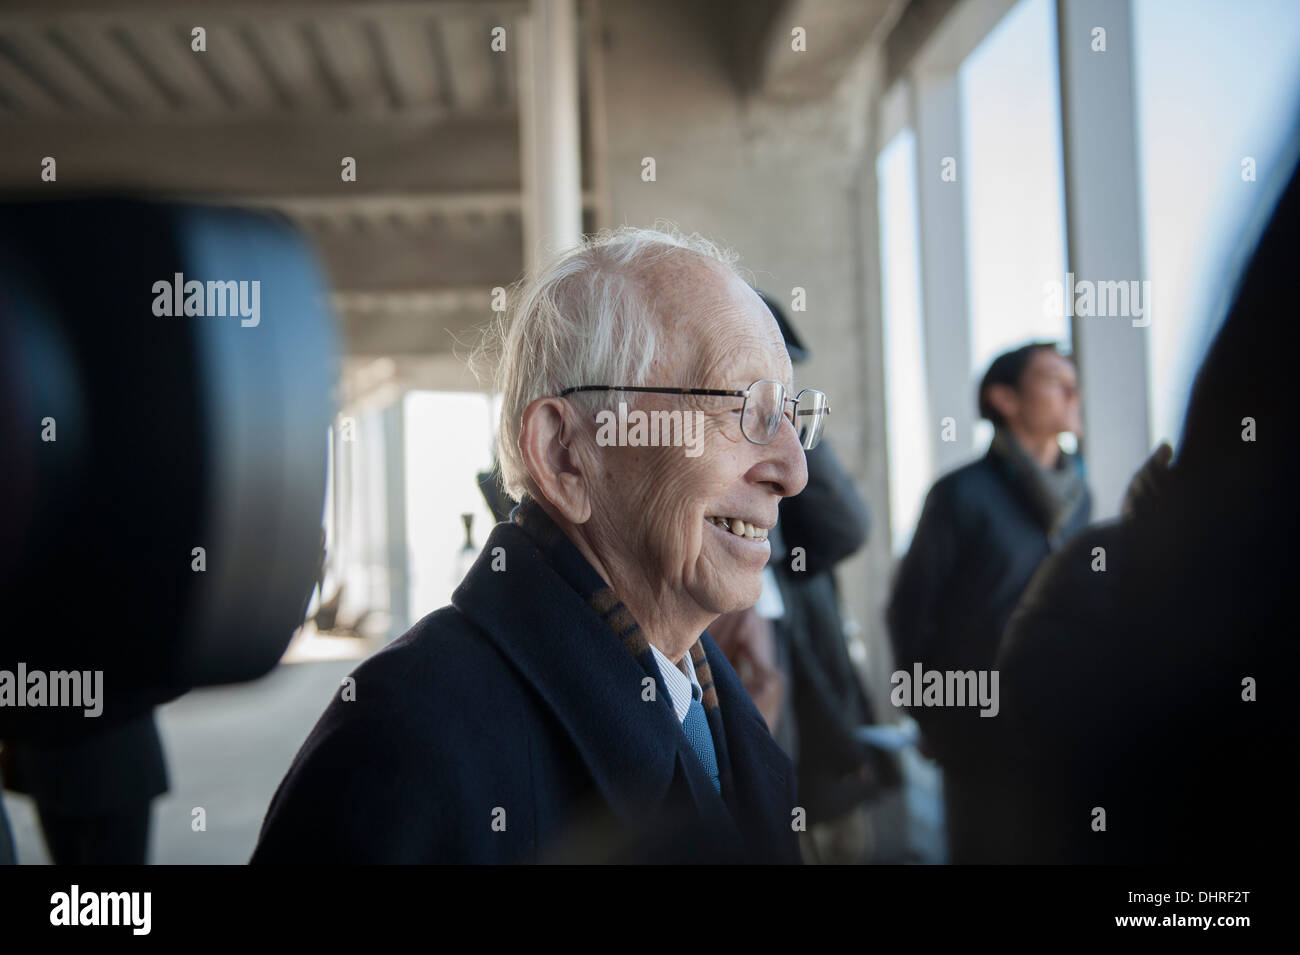 Fumihiko Maki, the architect of 4 World Trade Center in Manhattan, admiring the view from the 68th floor. - Stock Image